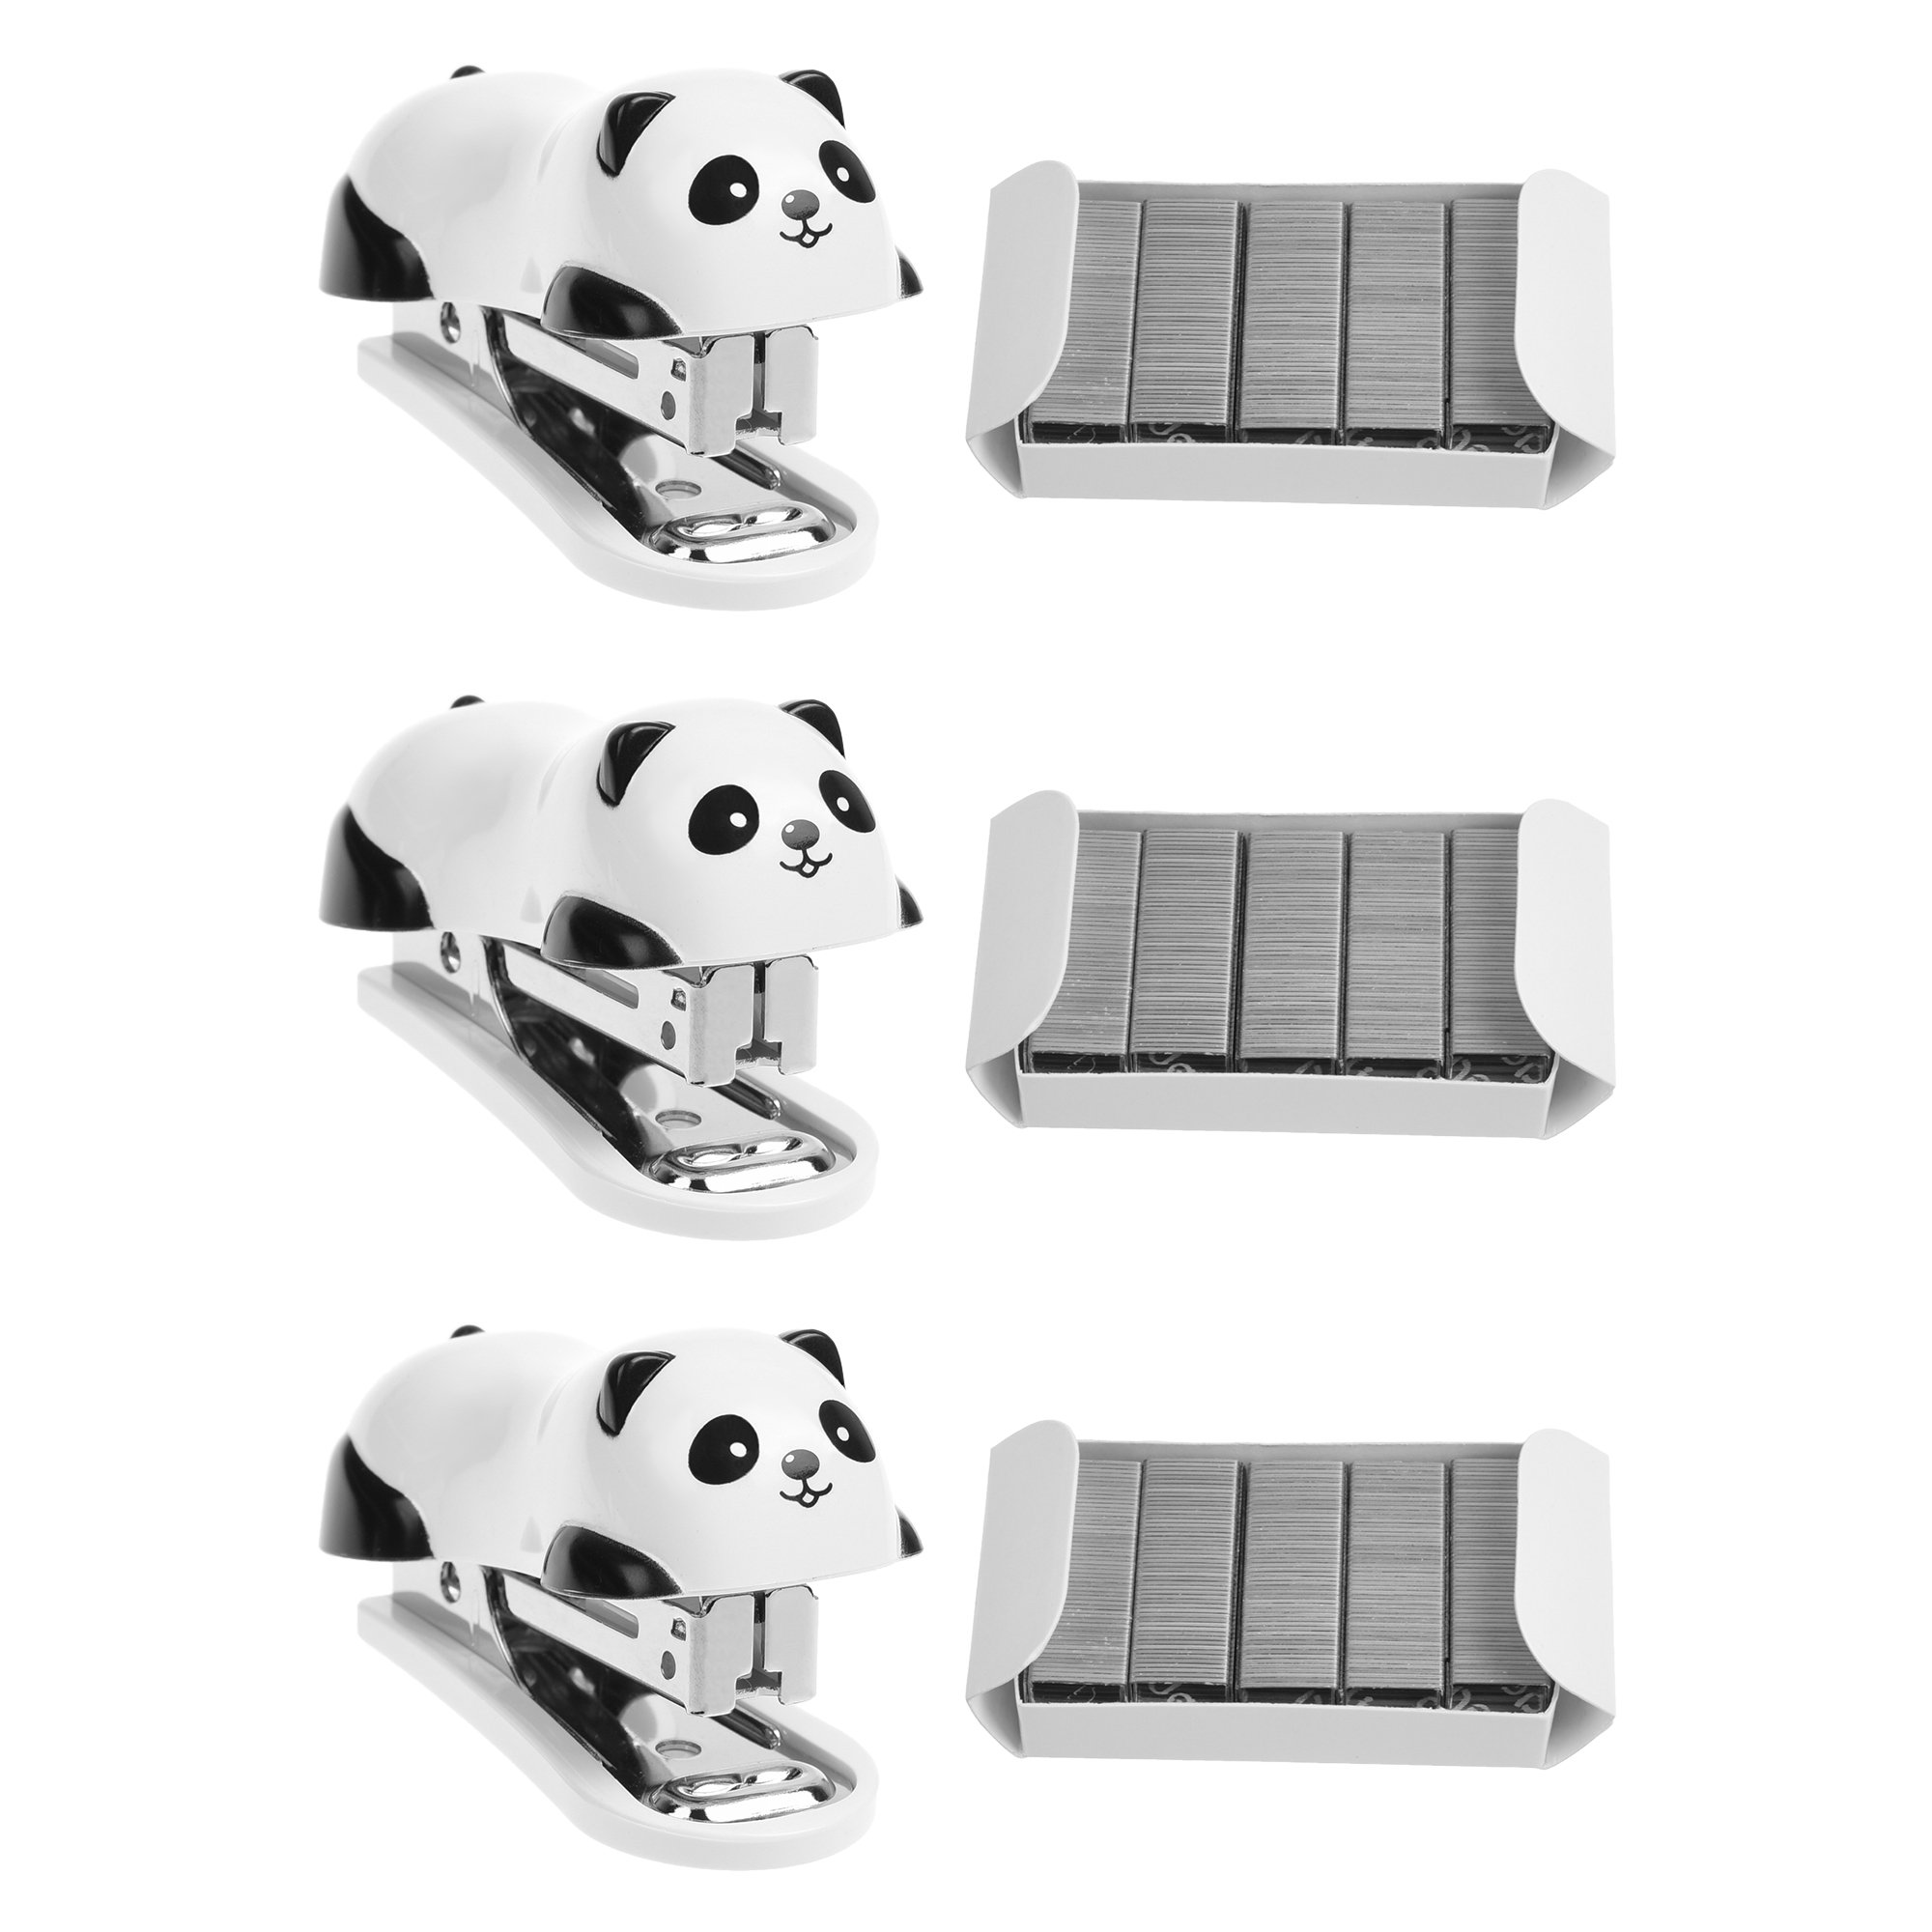 Kloud City Pack of 3 Cute Mini Panda Staplers with 1000Pcs Replace Staples Cartoon Desktop Staplers Best Award to School Student Office Stationery Supplies